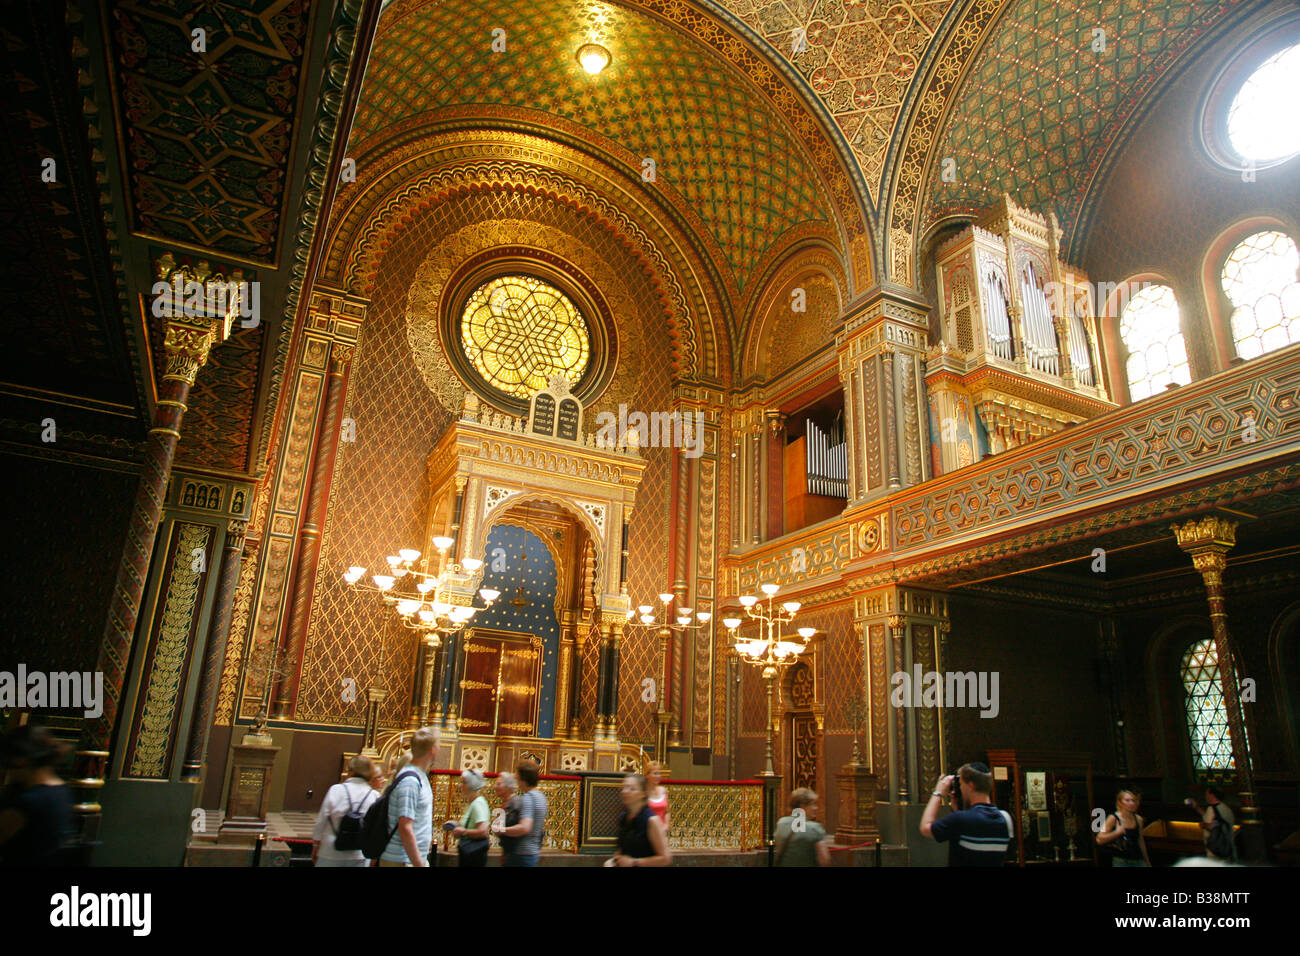 The Spanish Synagogue Josefov Prague Czech Republic - Stock Image